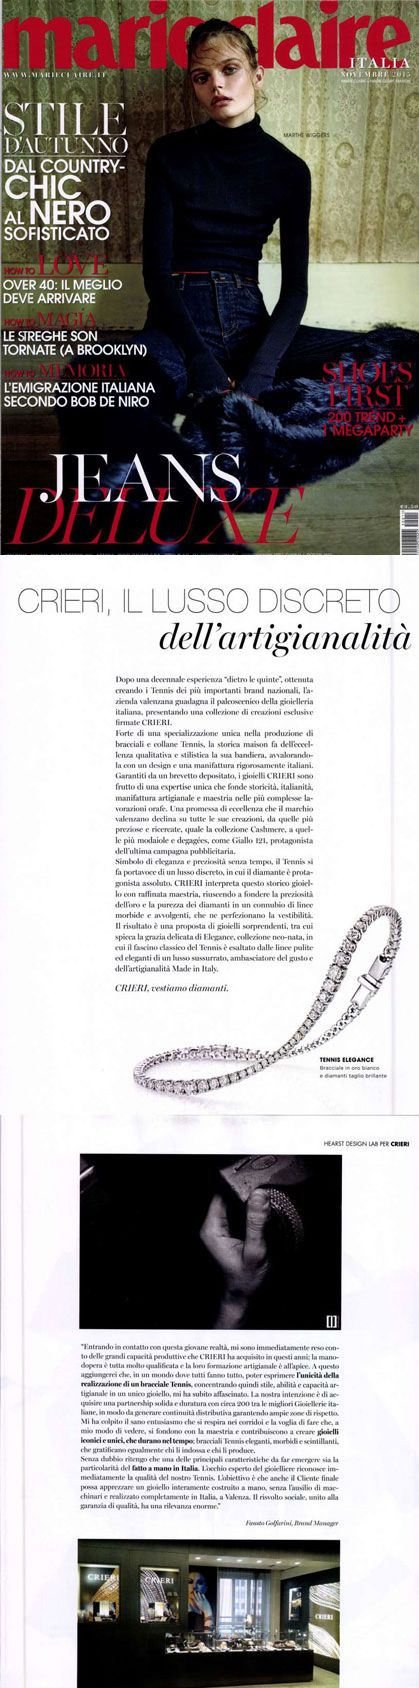 ❖Visto su #MARIECLAIRE – 01/11/2015❖ ‪#Elegance collection. #tennis #bracelets #trendy #jewelry #fashion #gold #valenza #crieri #vestiamodiamanti #tennispassion #tennisclub #glamour #chic #lifestyle